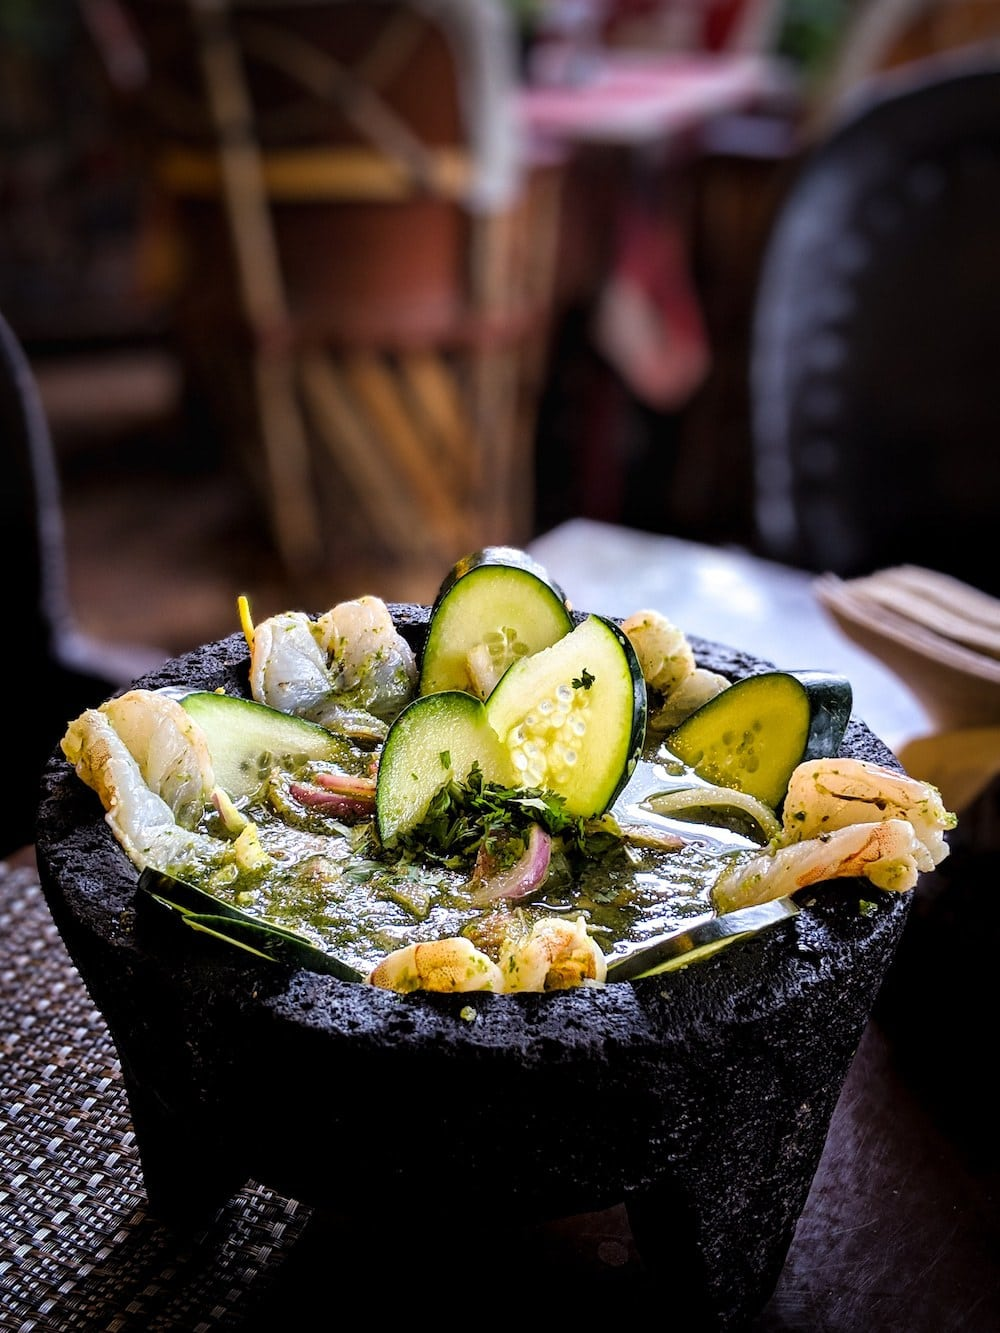 Molcajete is a dish that is served on a mortar